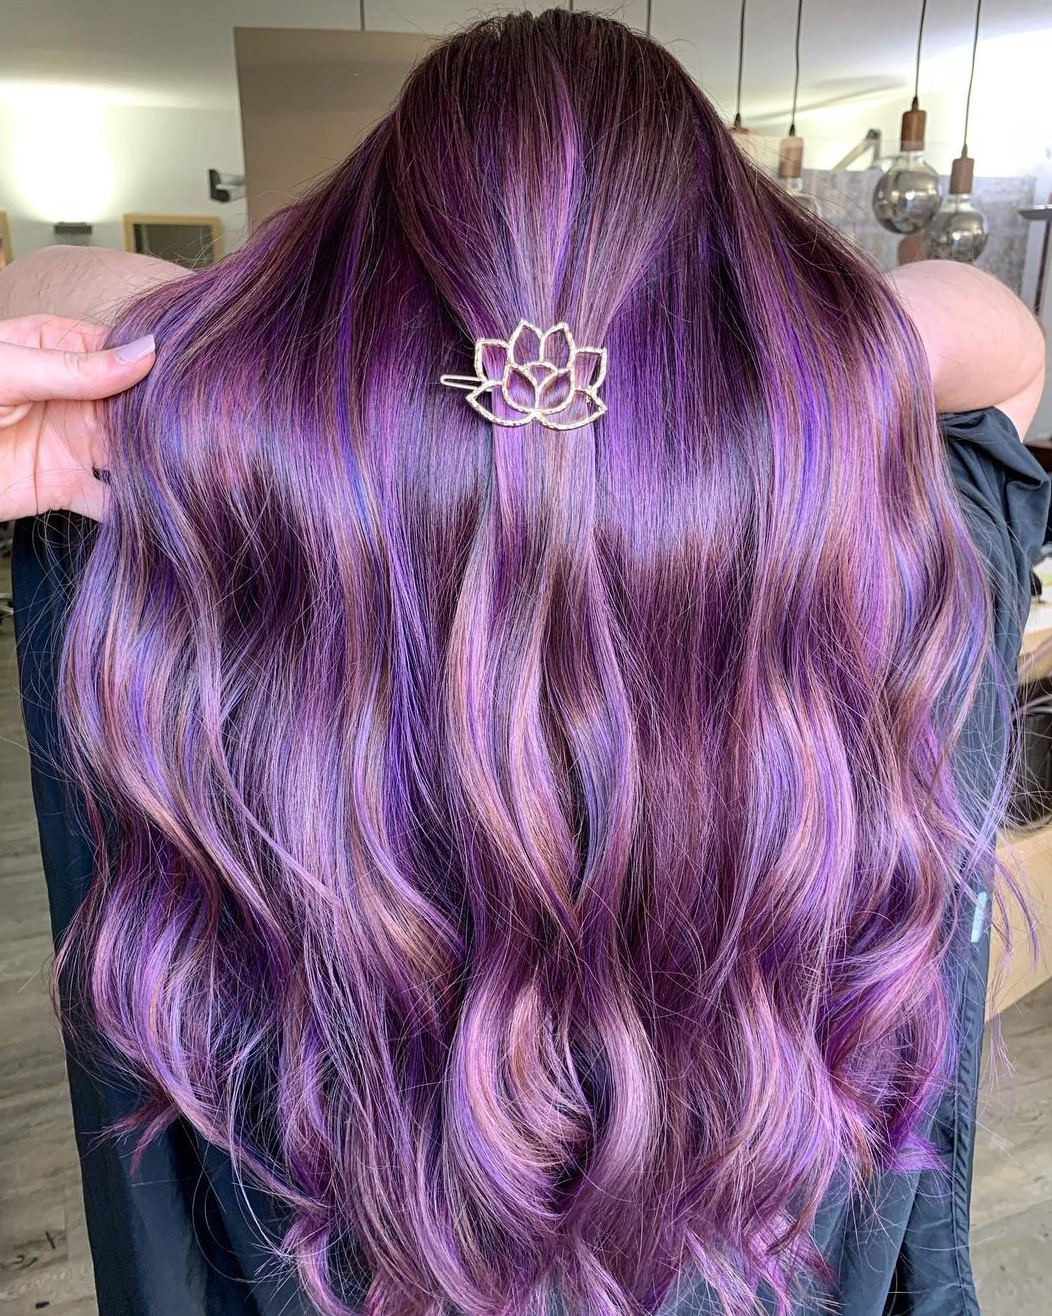 Warm Brown Hair with Purple Highlights